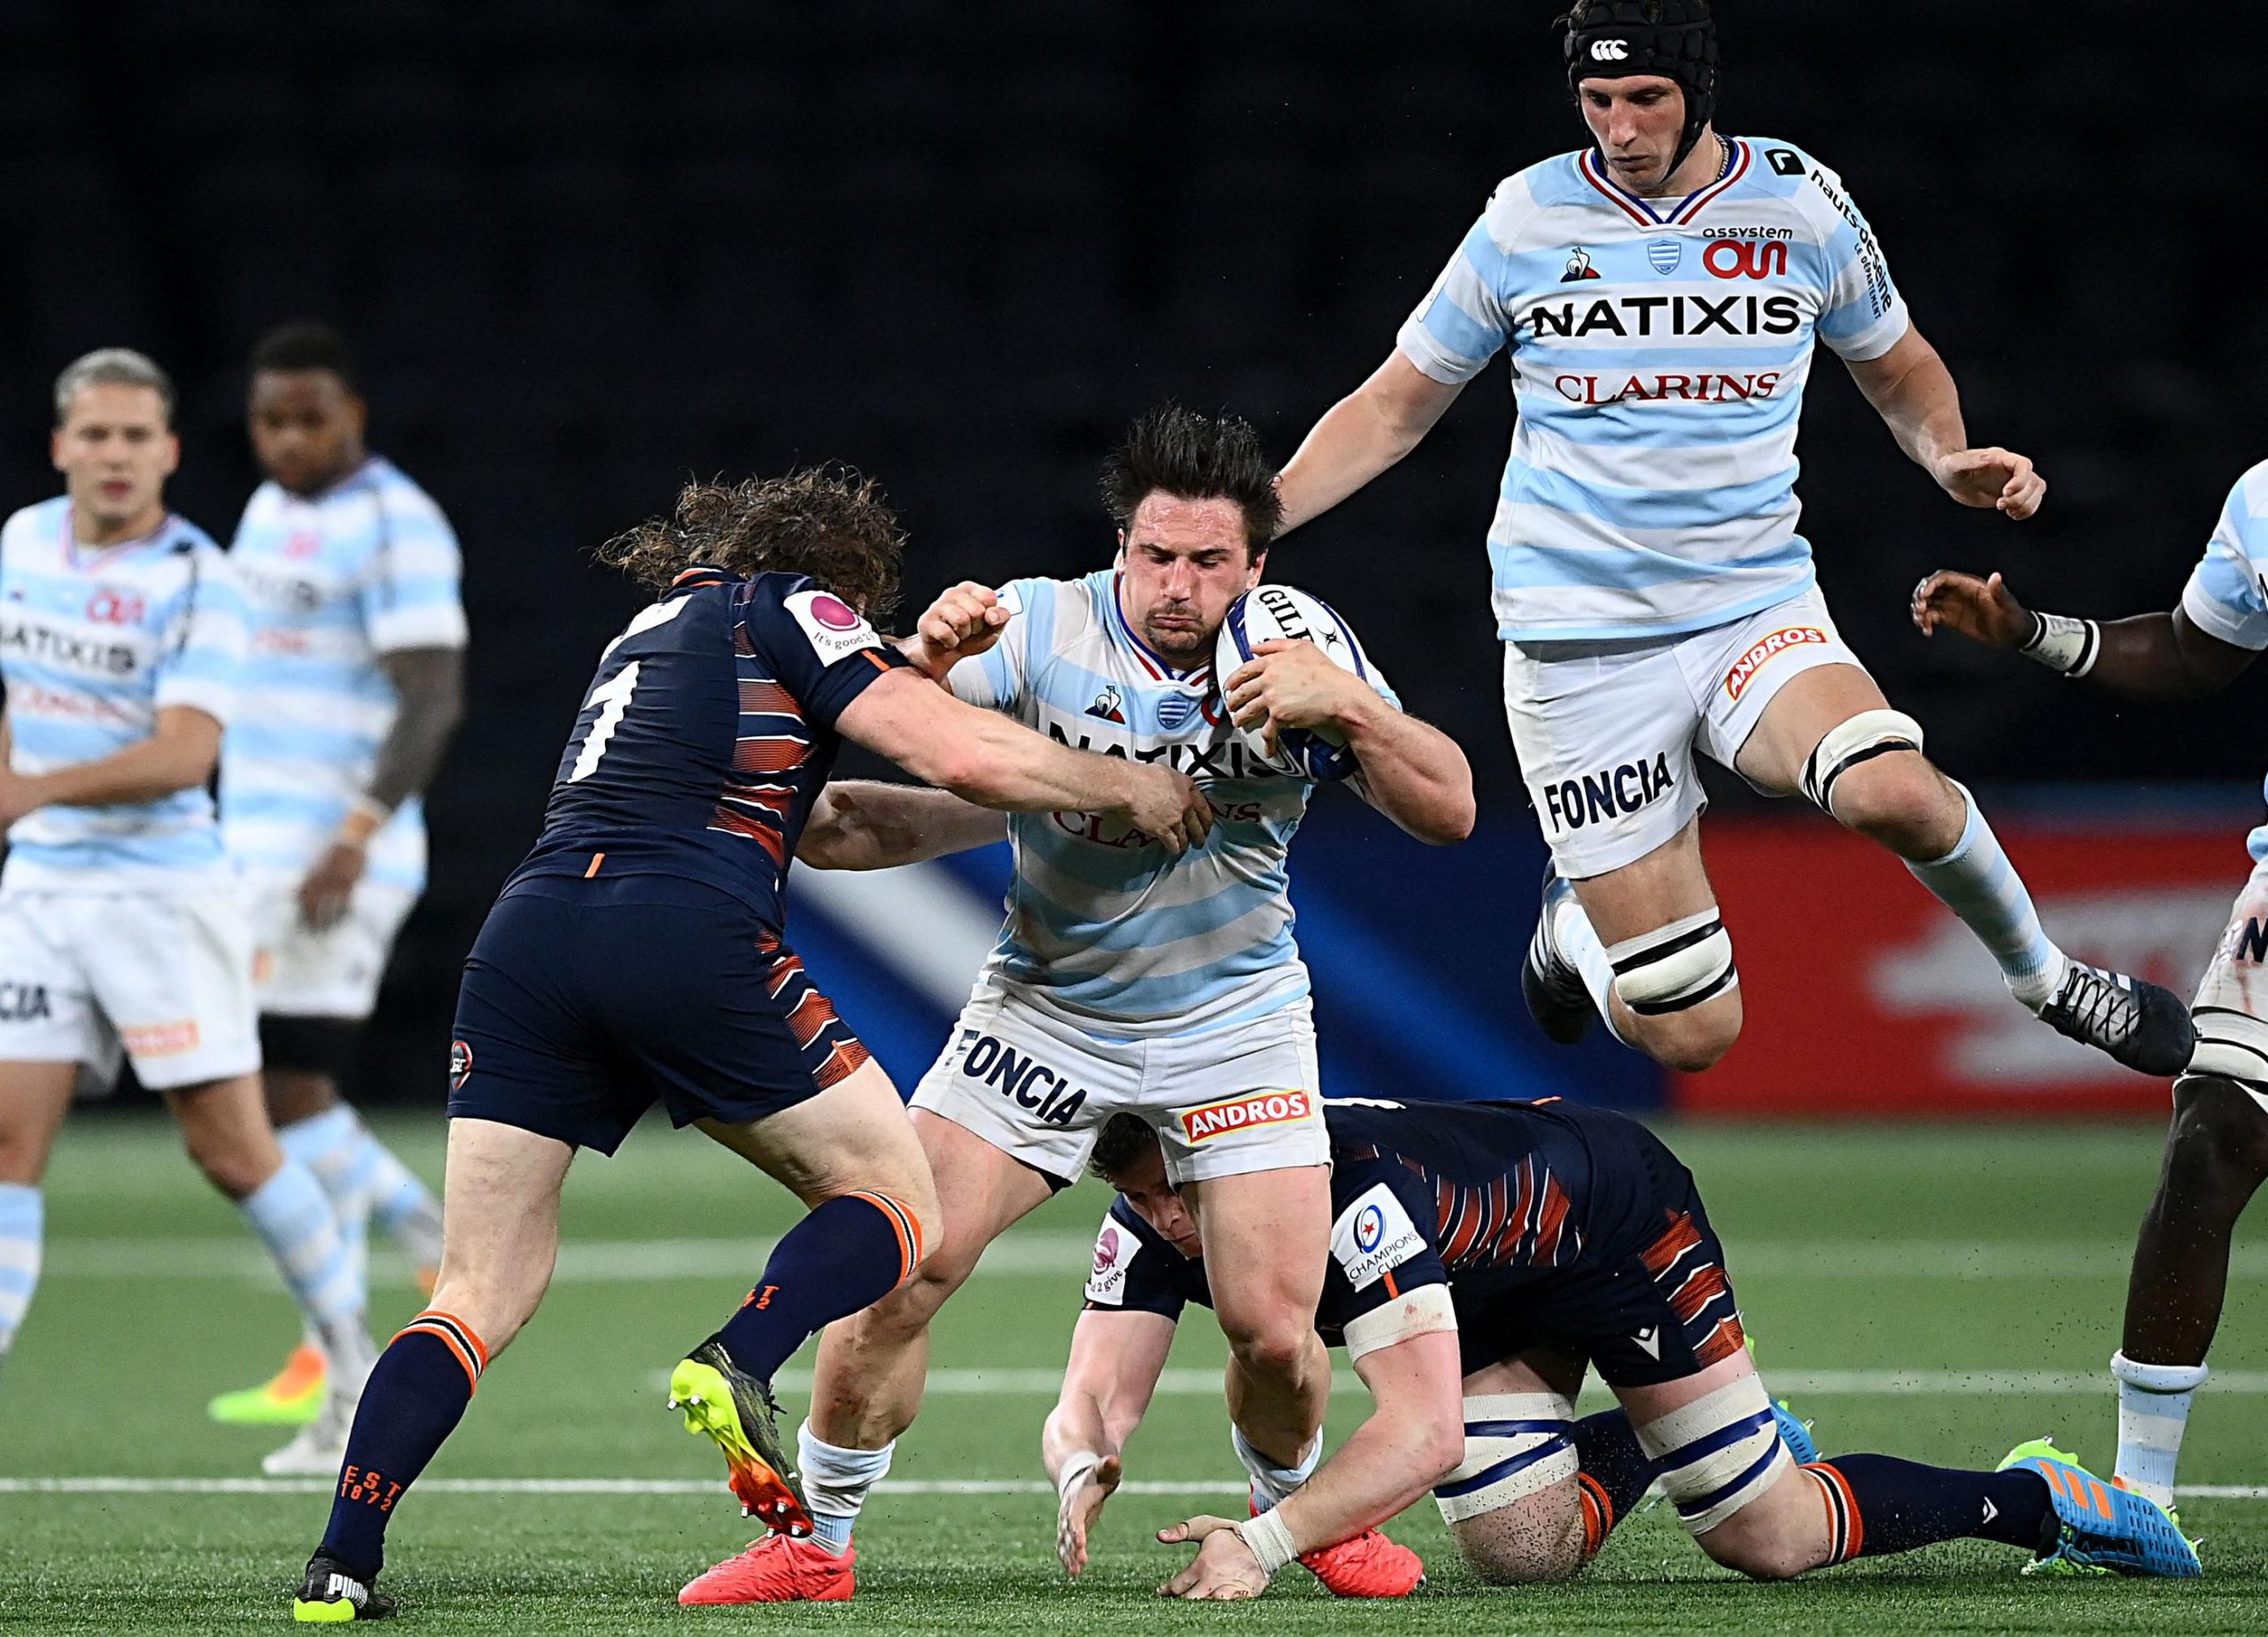 European Rugby Cup: Racing 92 fell to Bordeaux